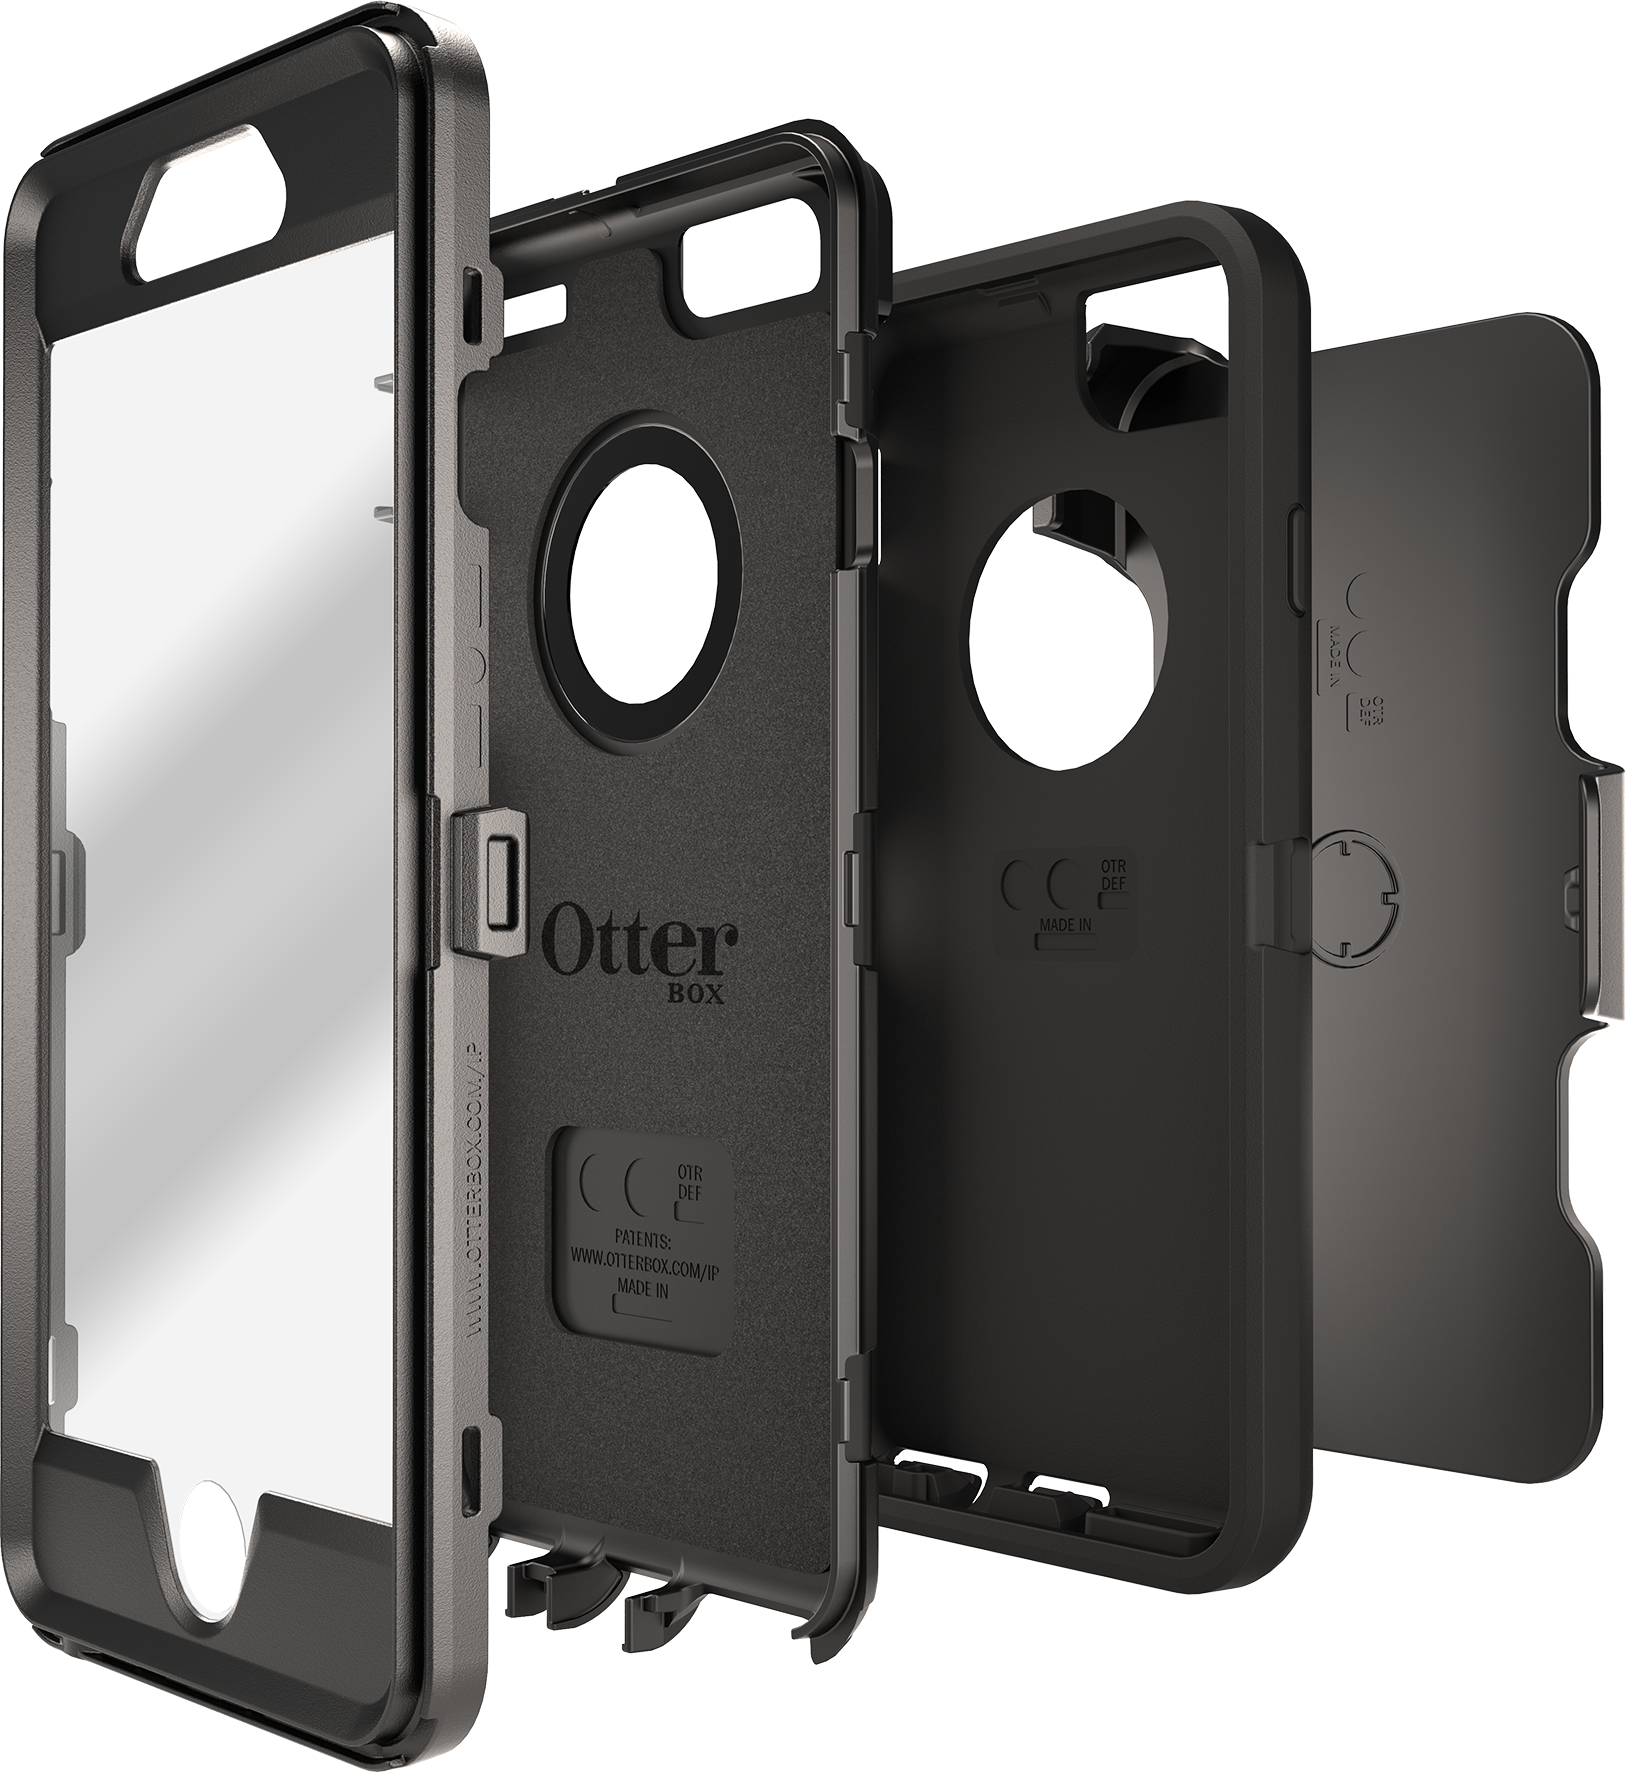 OtterBox Defender iPhone 6